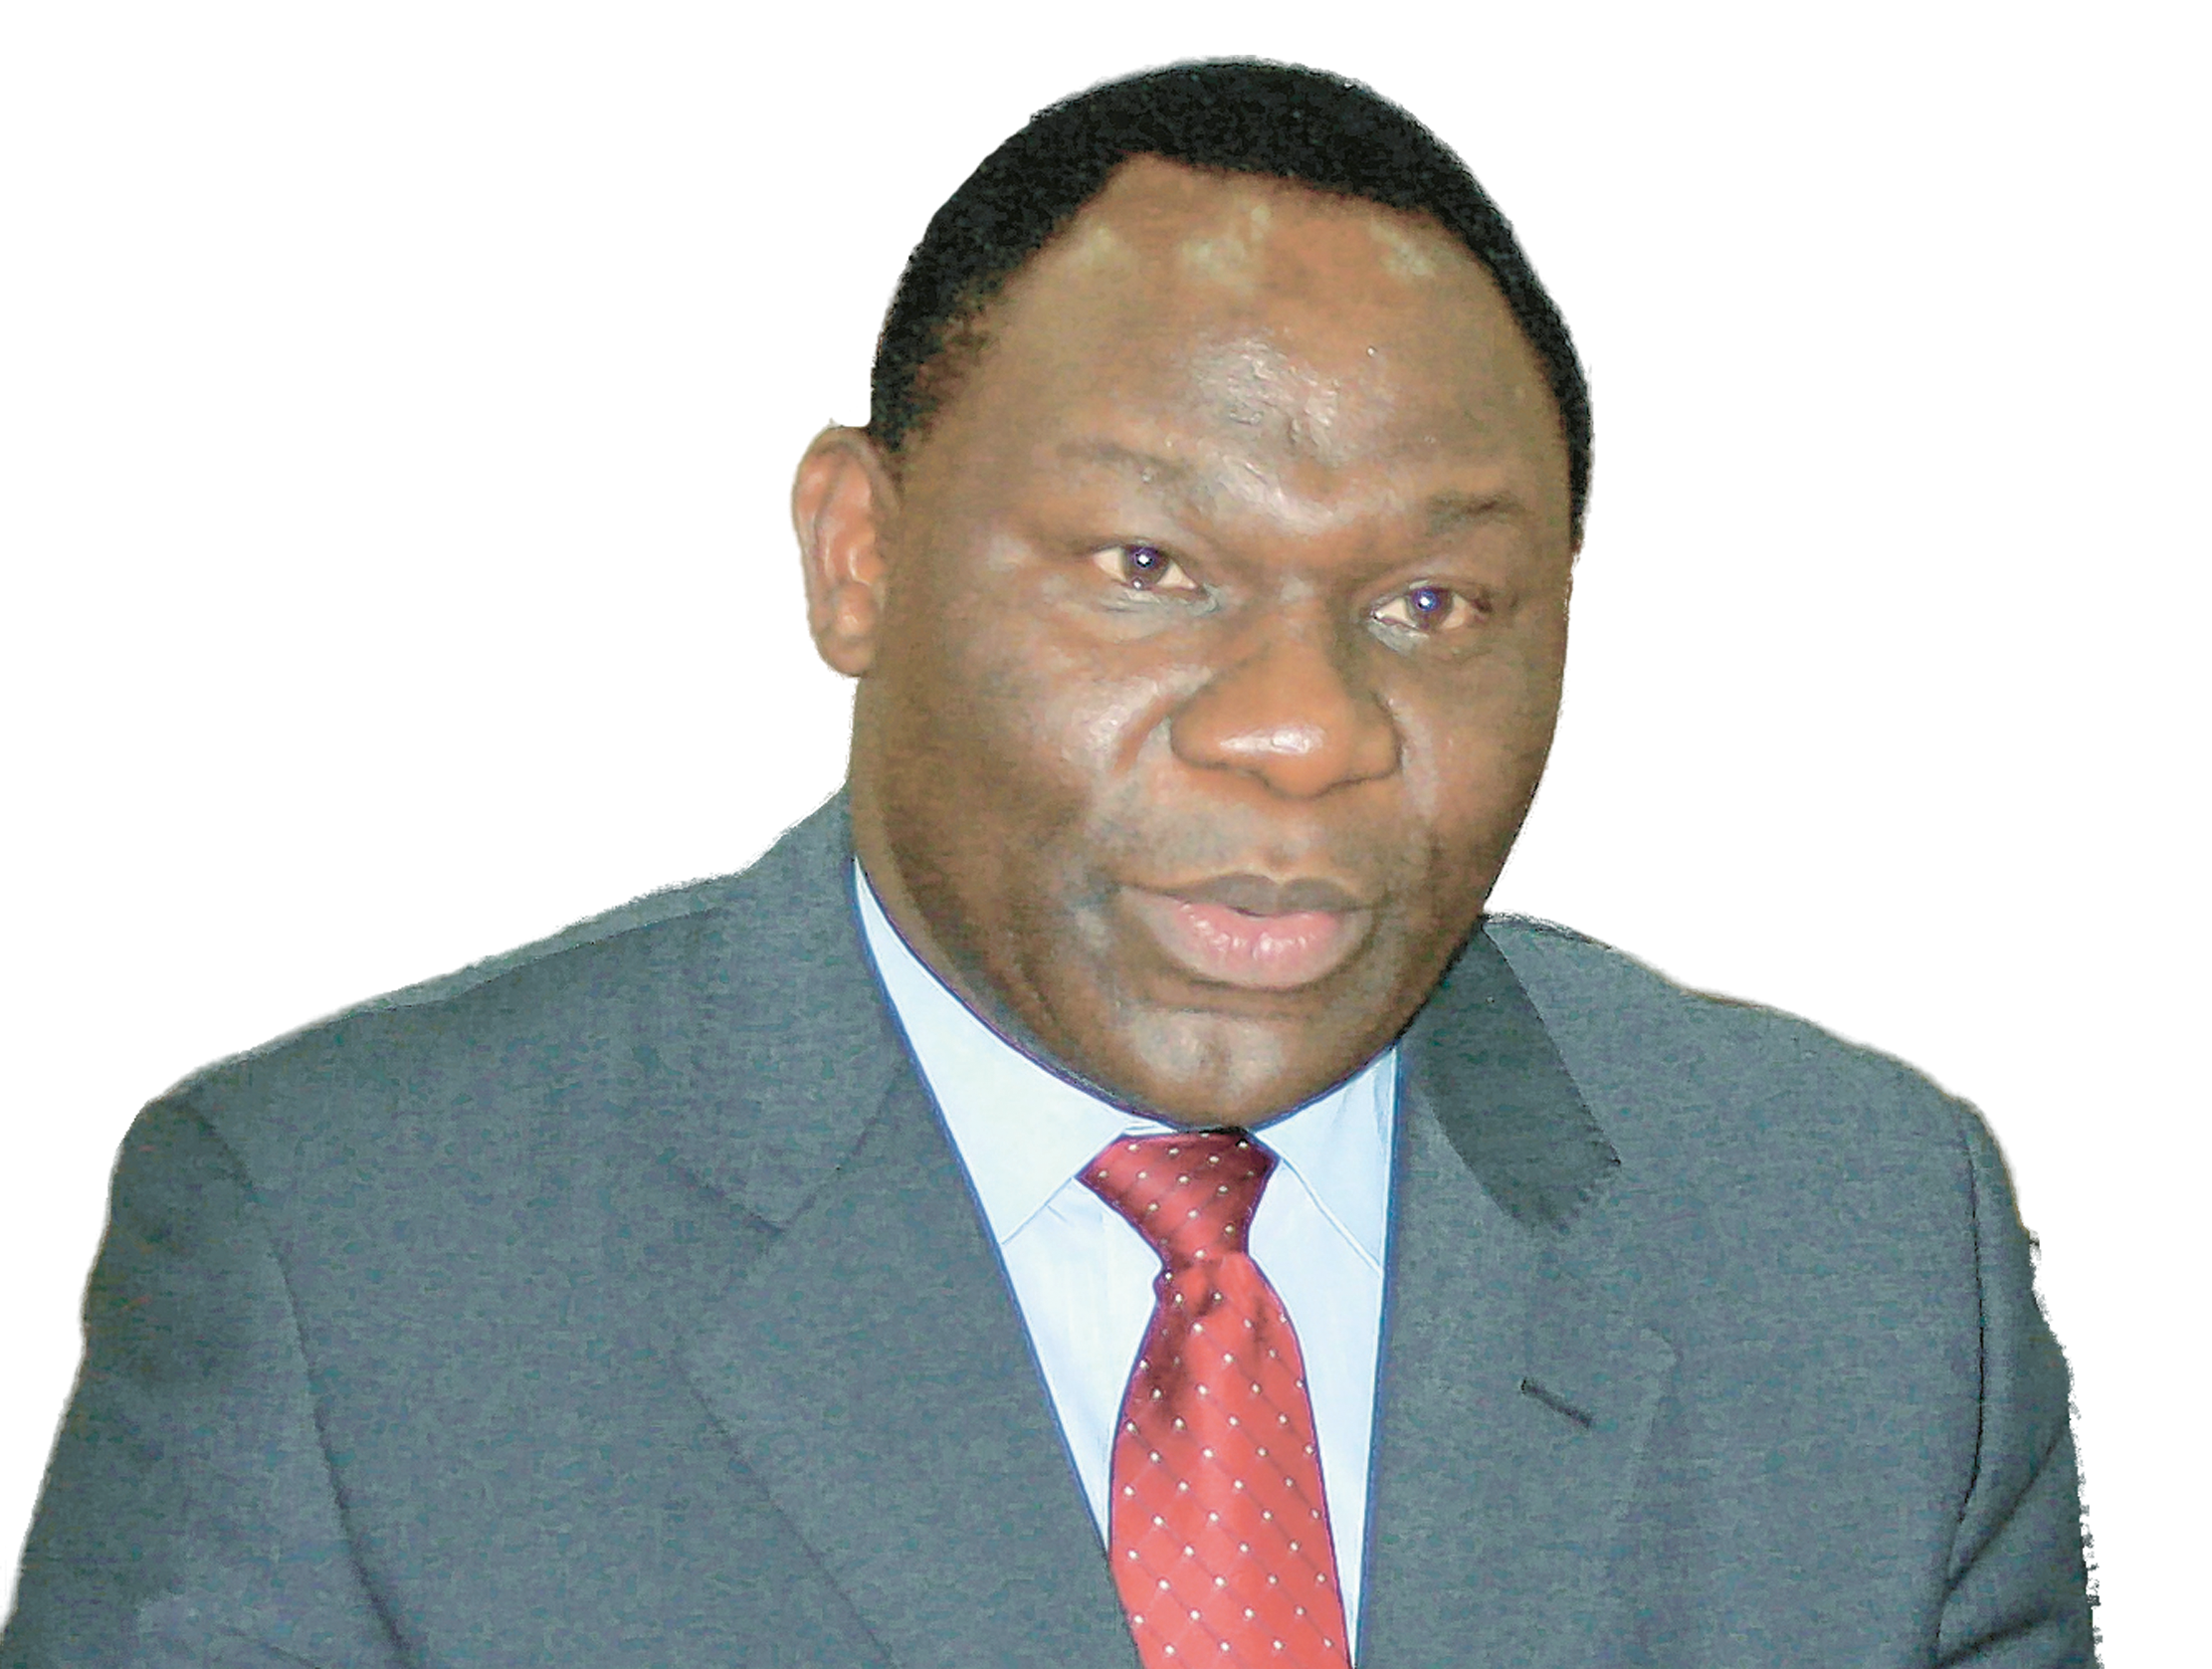 Bitange Ndemo is former Permanent Secretary, ministry of Information, who currently lectures on entrepreneurship and research methods at the University of Nairobi. He speaks on technology, culture, why high walls and metallic gates won't save the rich, and the futility of the '#WeAreOne' slogan